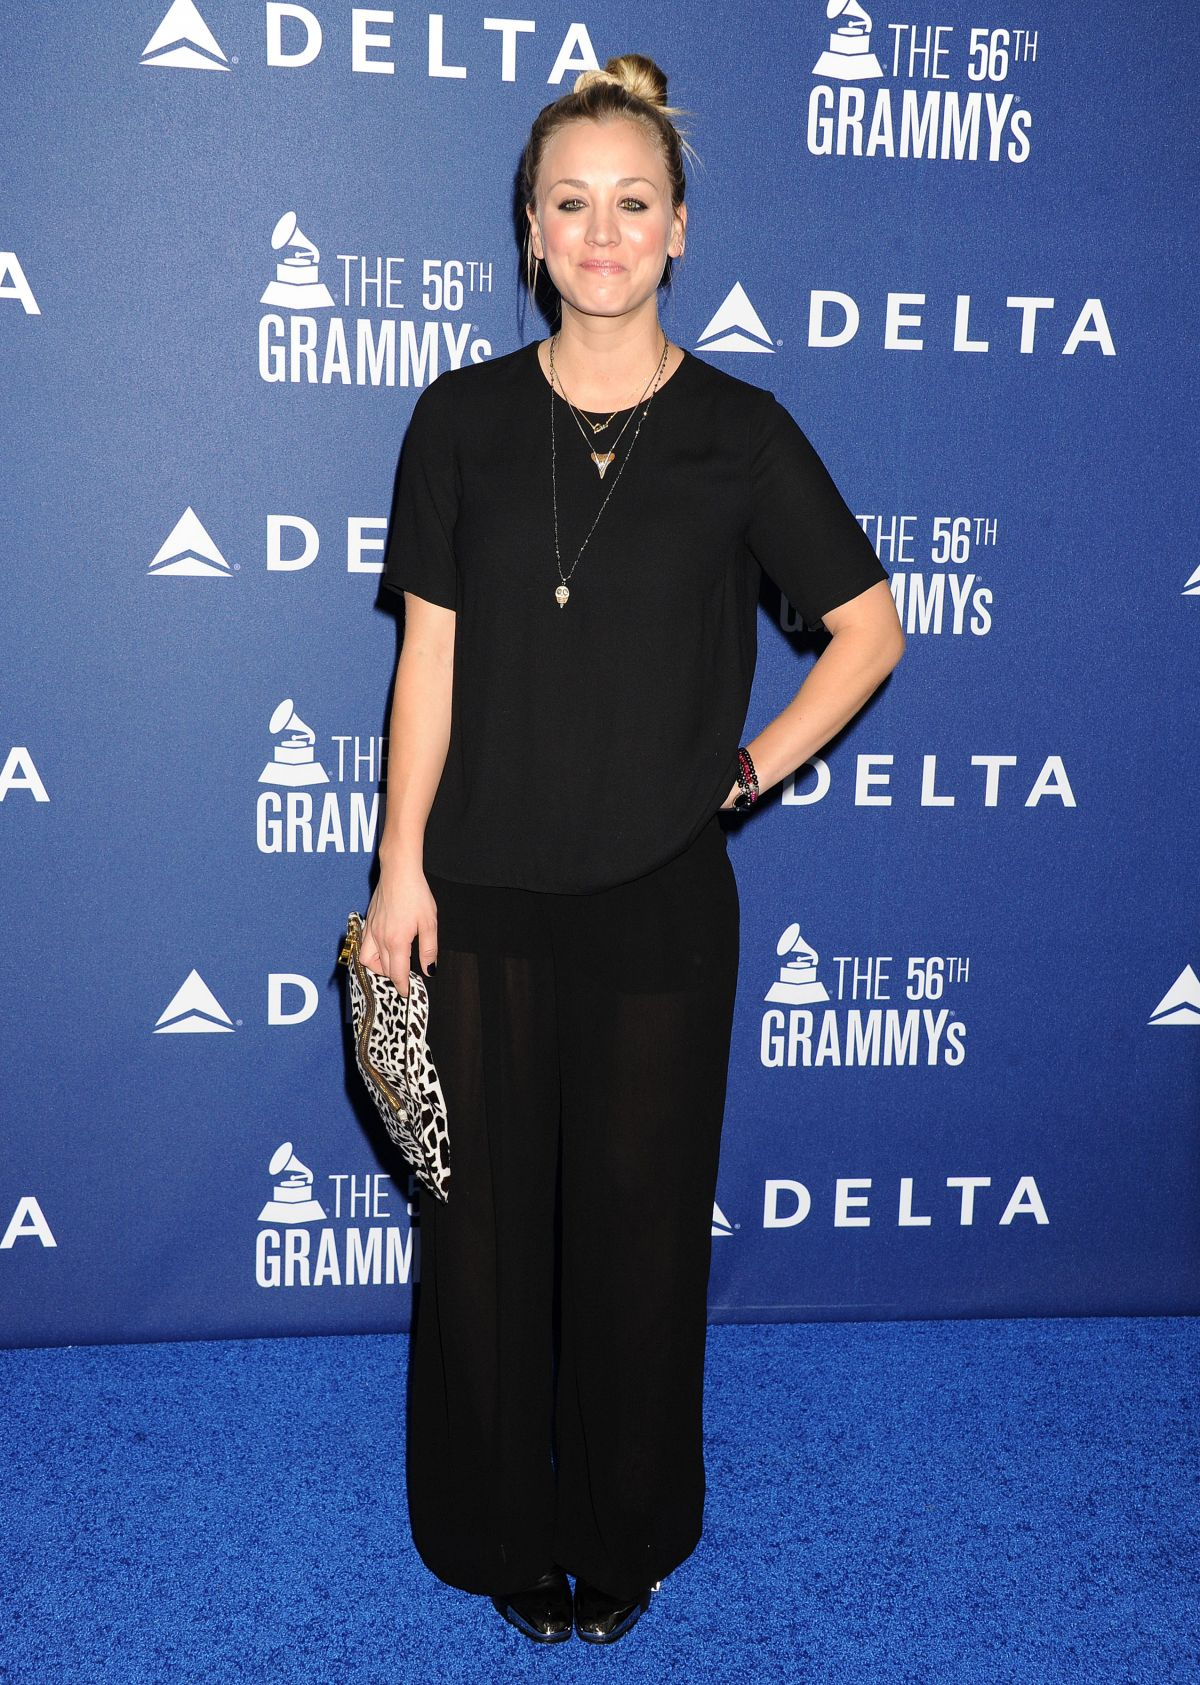 KALEY CUOCO at Delta Air Lines 2014 Grammy Weekend Reception in Los Angeles